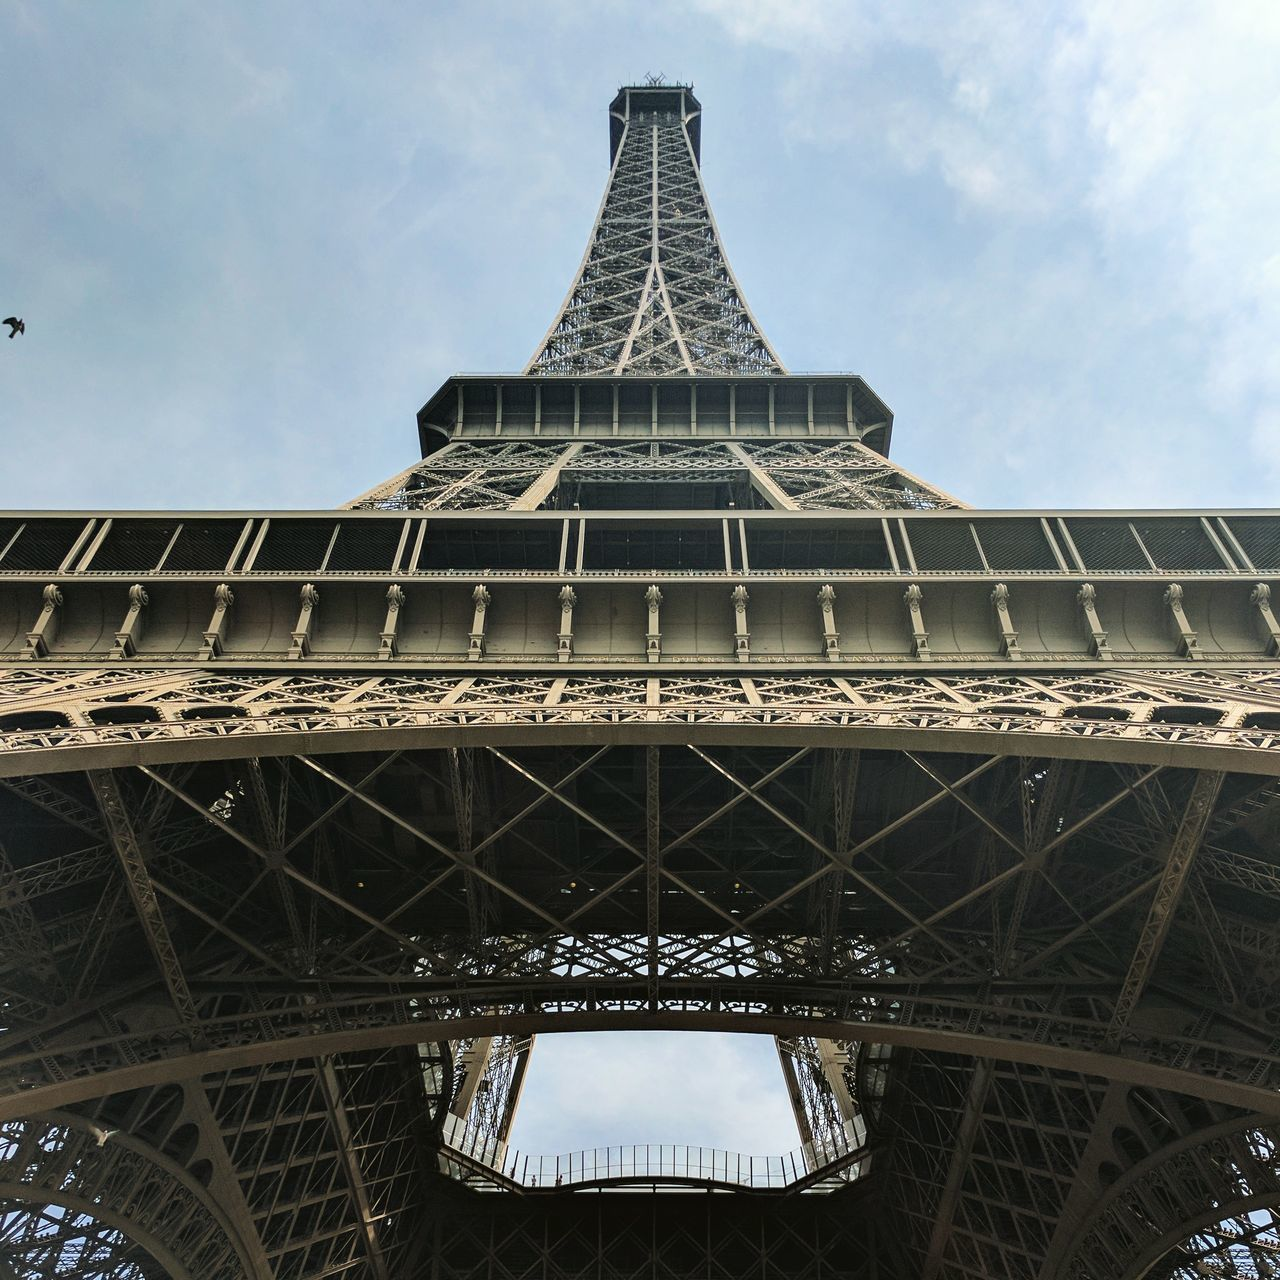 architecture, built structure, tower, low angle view, tourism, travel destinations, travel, no people, outdoors, sky, day